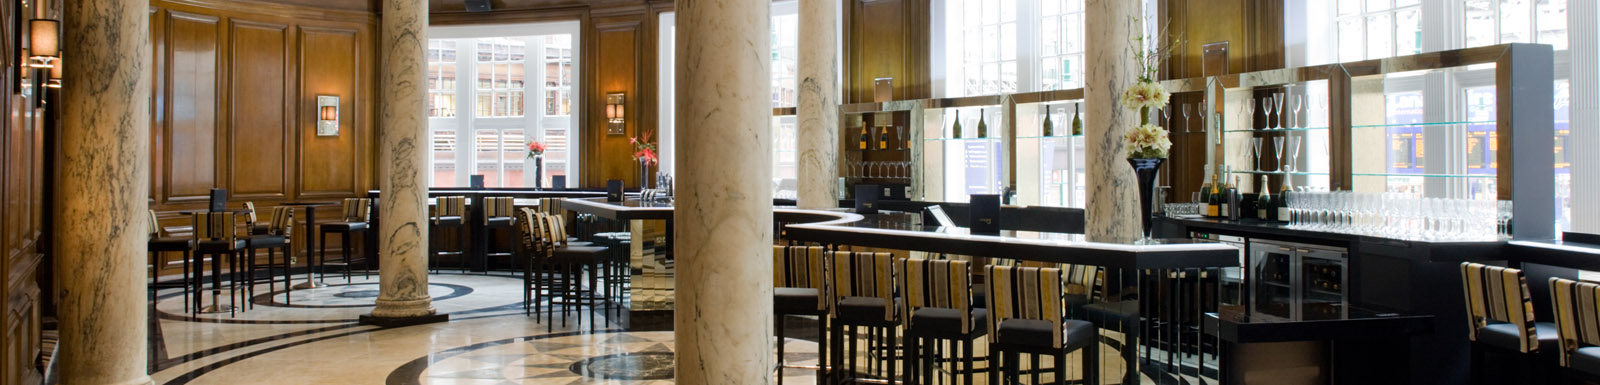 The Grand Central Hotel's cocktail bar